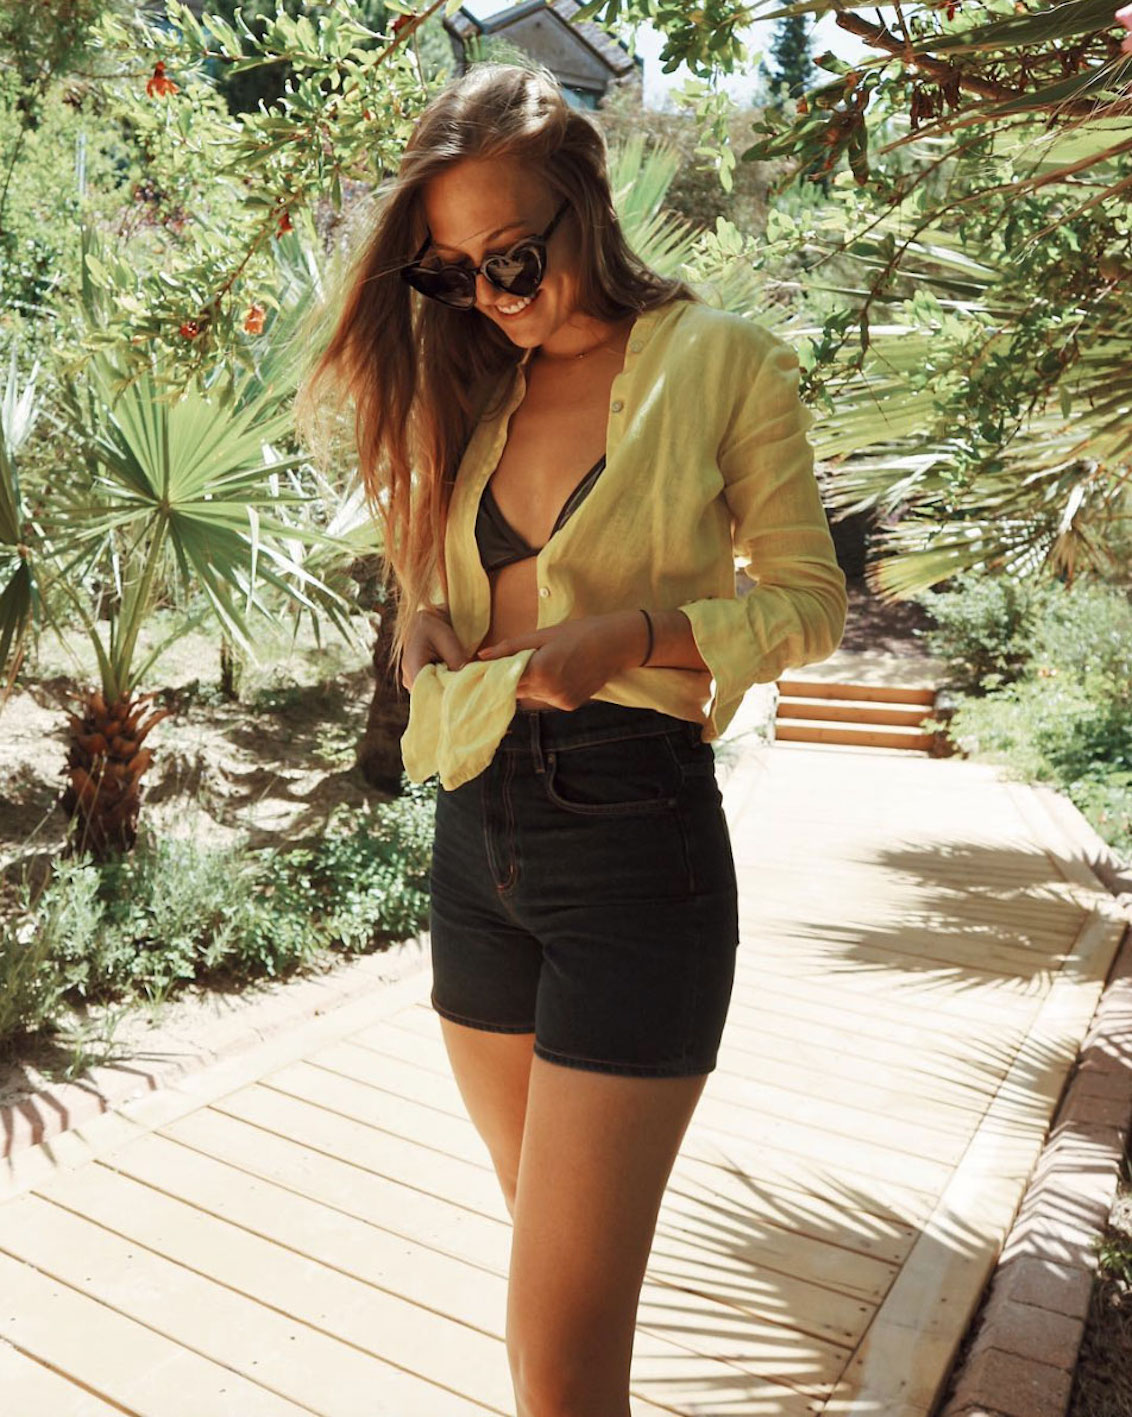 floortjeloves, what I wore, instagram outfits, my instagram outfits, Paris, izmir, club marvy, France, amsterdam, turkey, summer outfits, swimming outfits